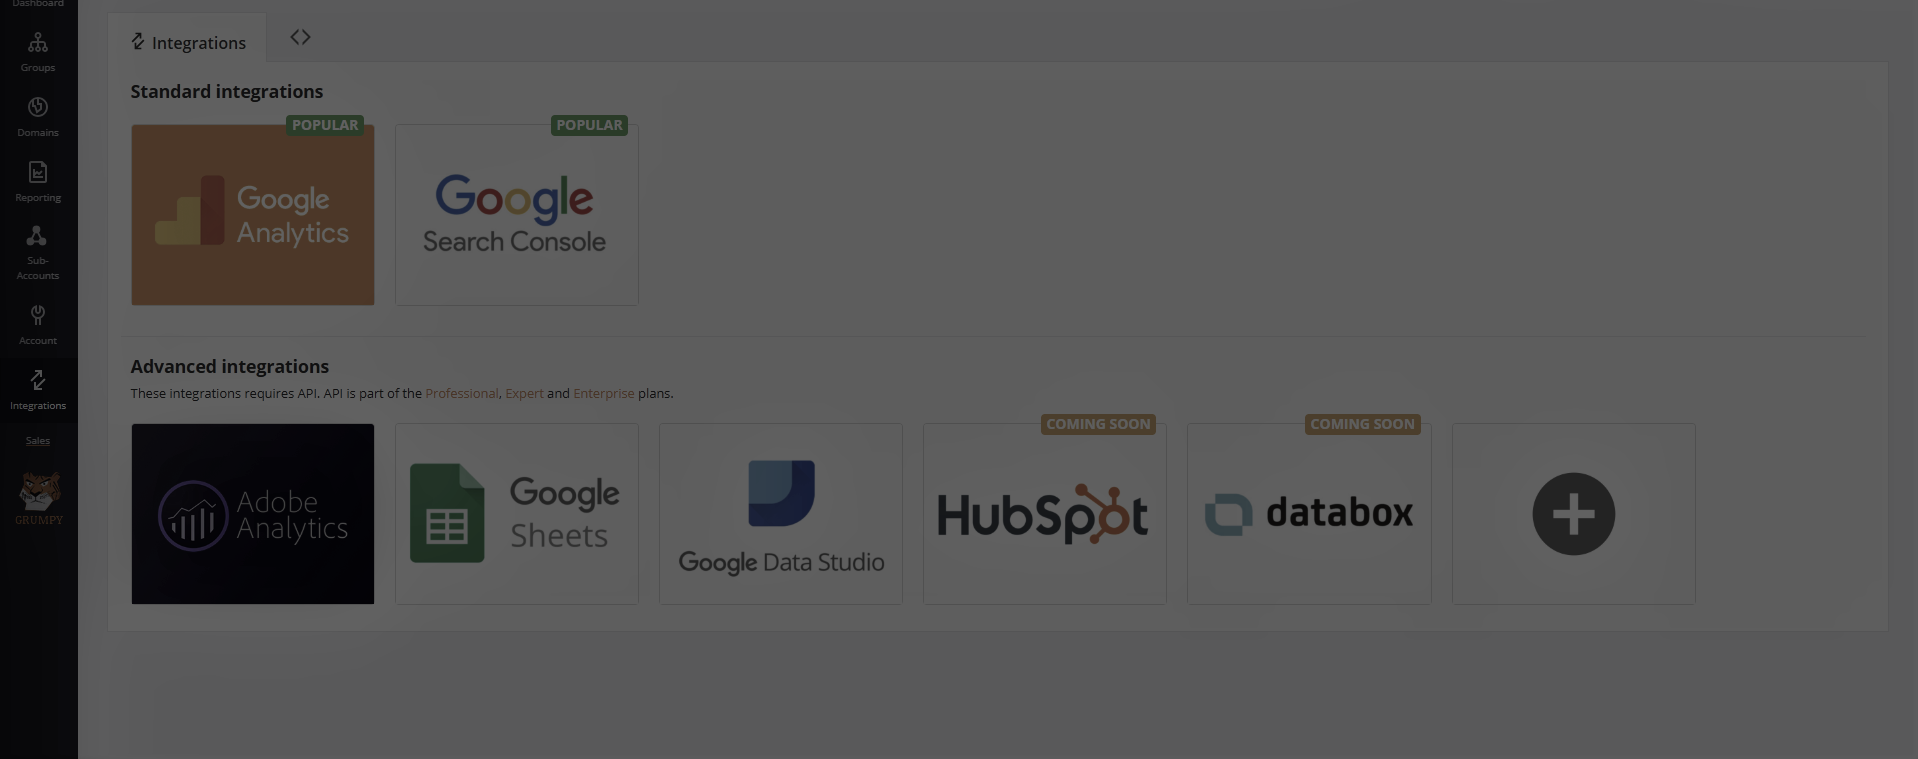 integration of hubspot